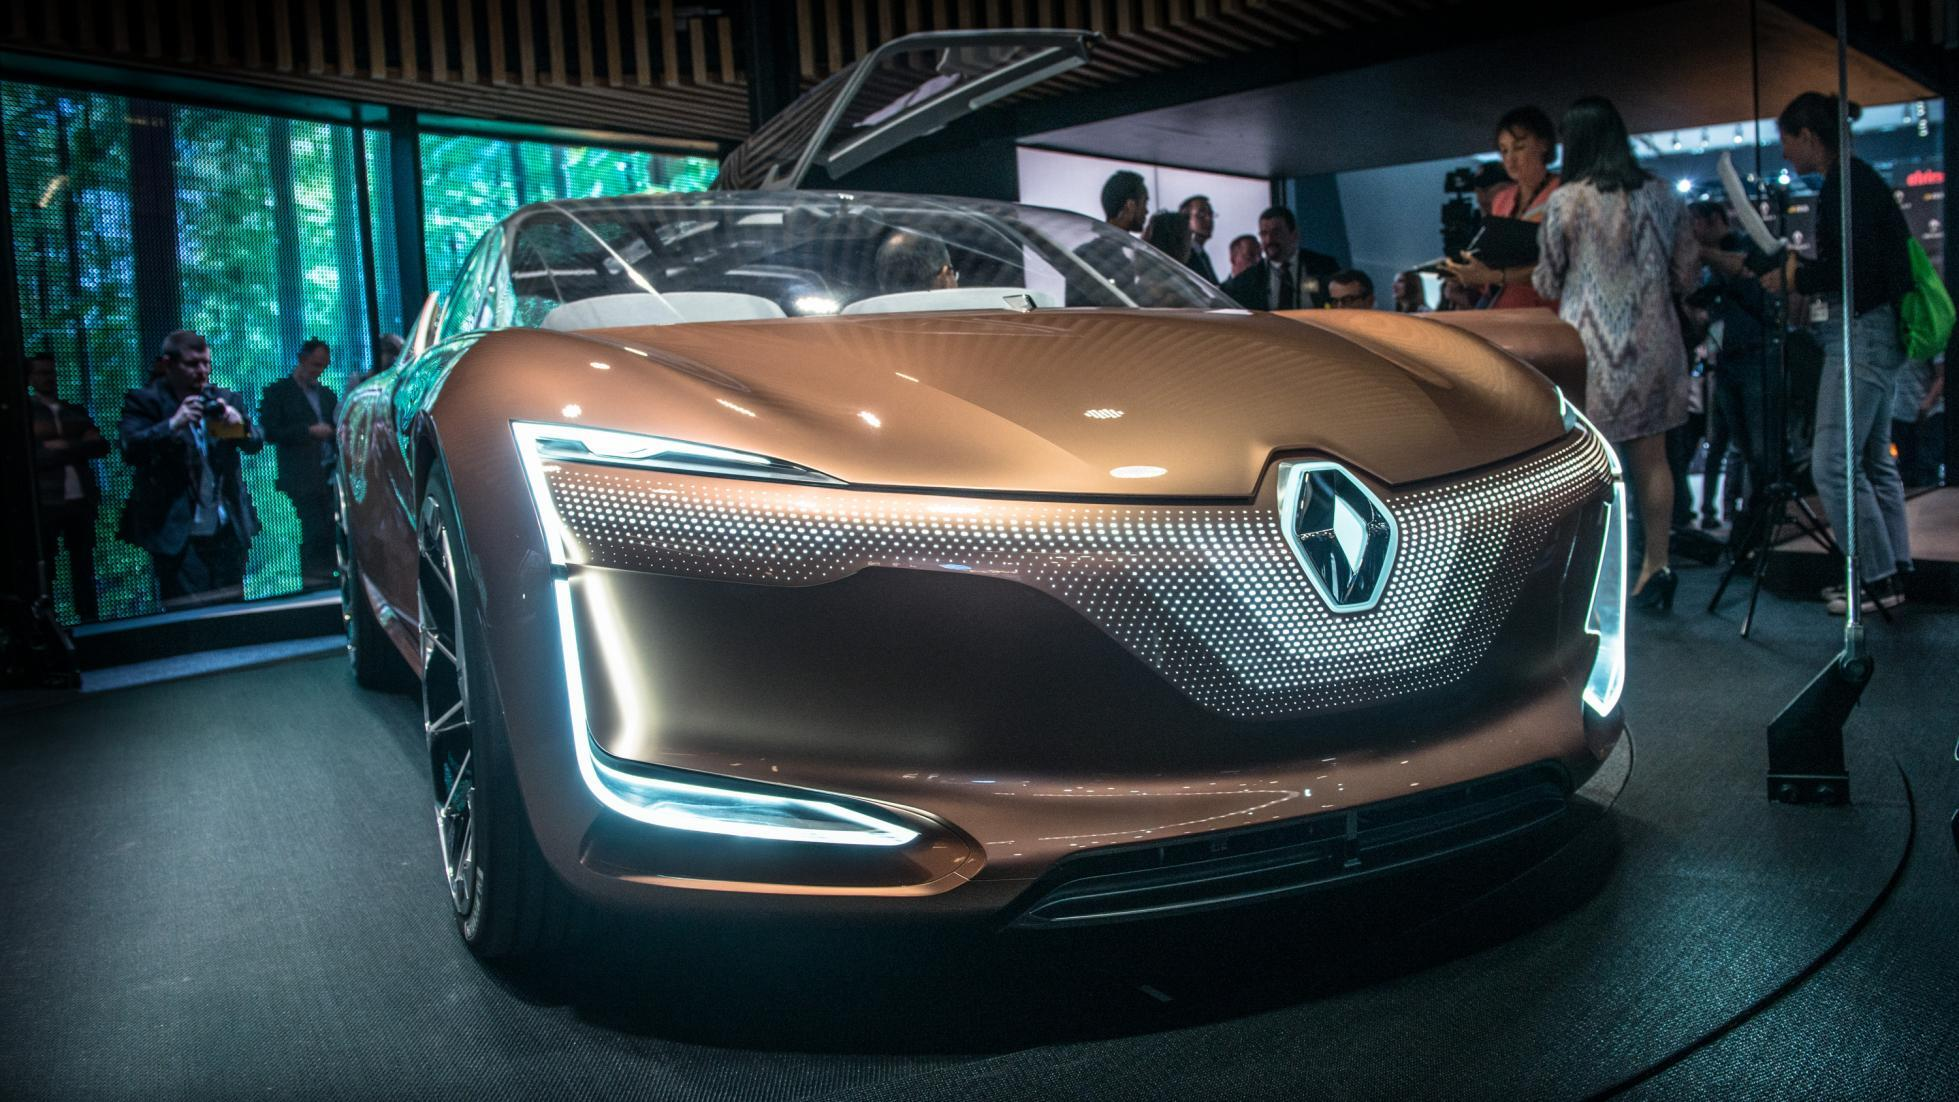 The Renault Symbioz isn't just a concept car